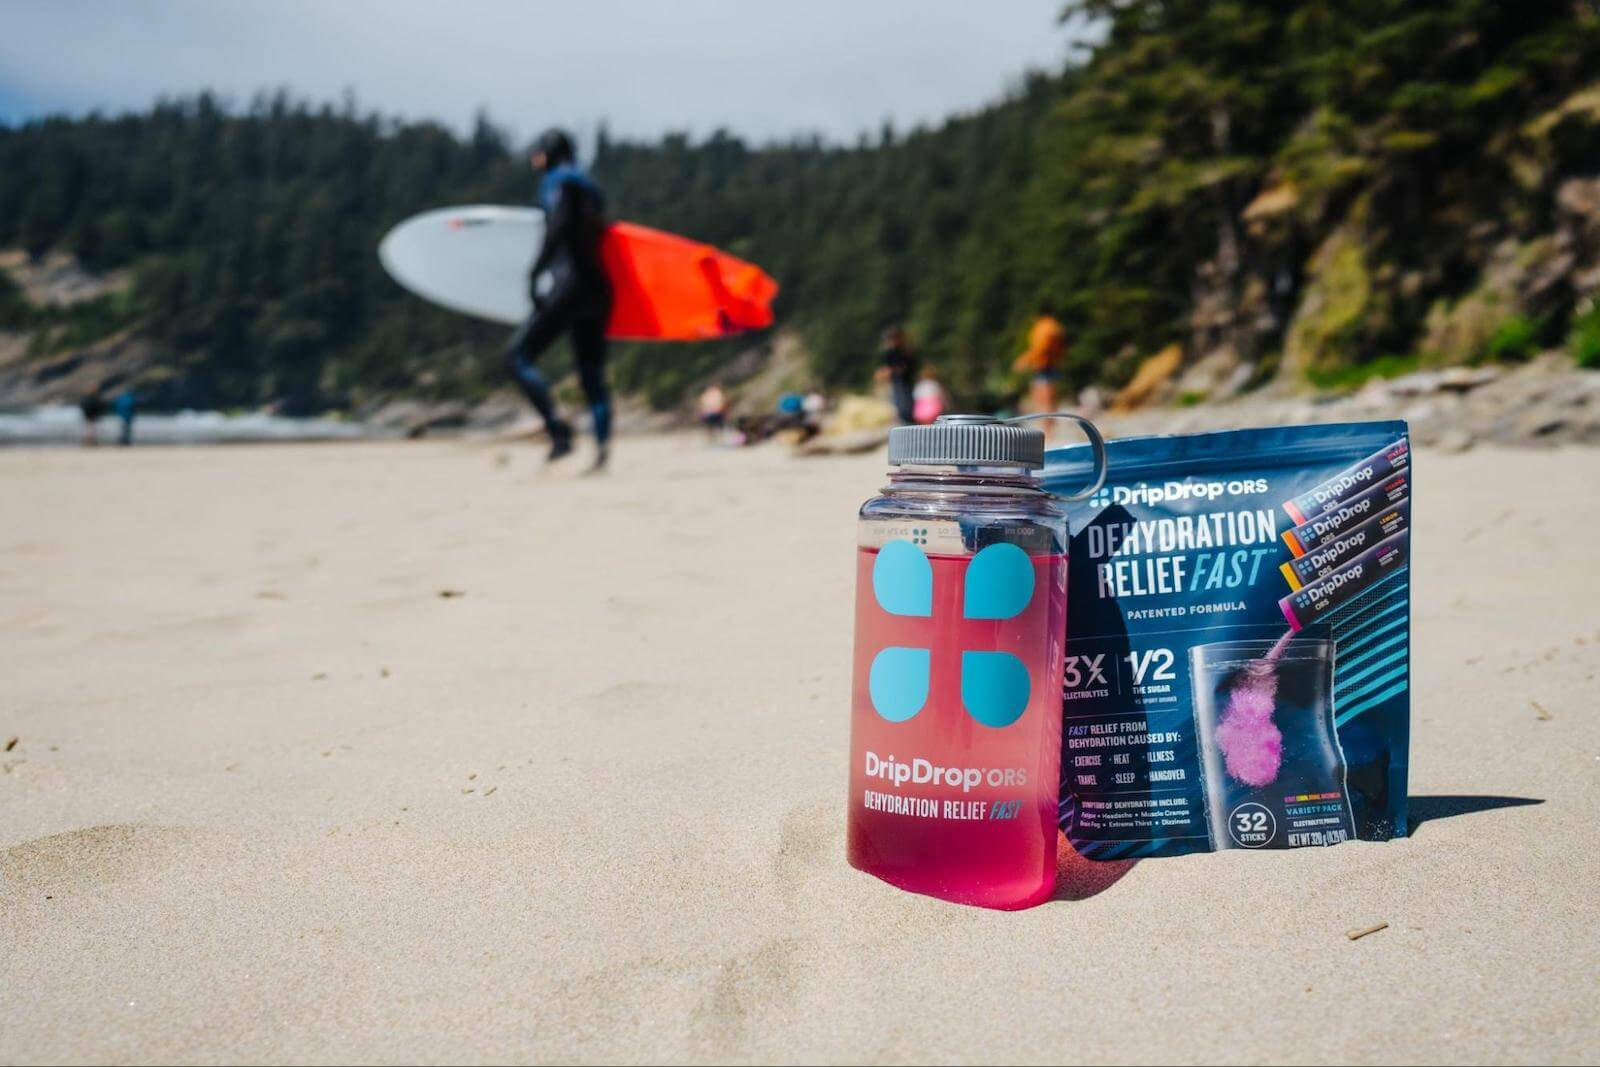 How to cool down: DripDrop ORS pack and tumbler on the beach